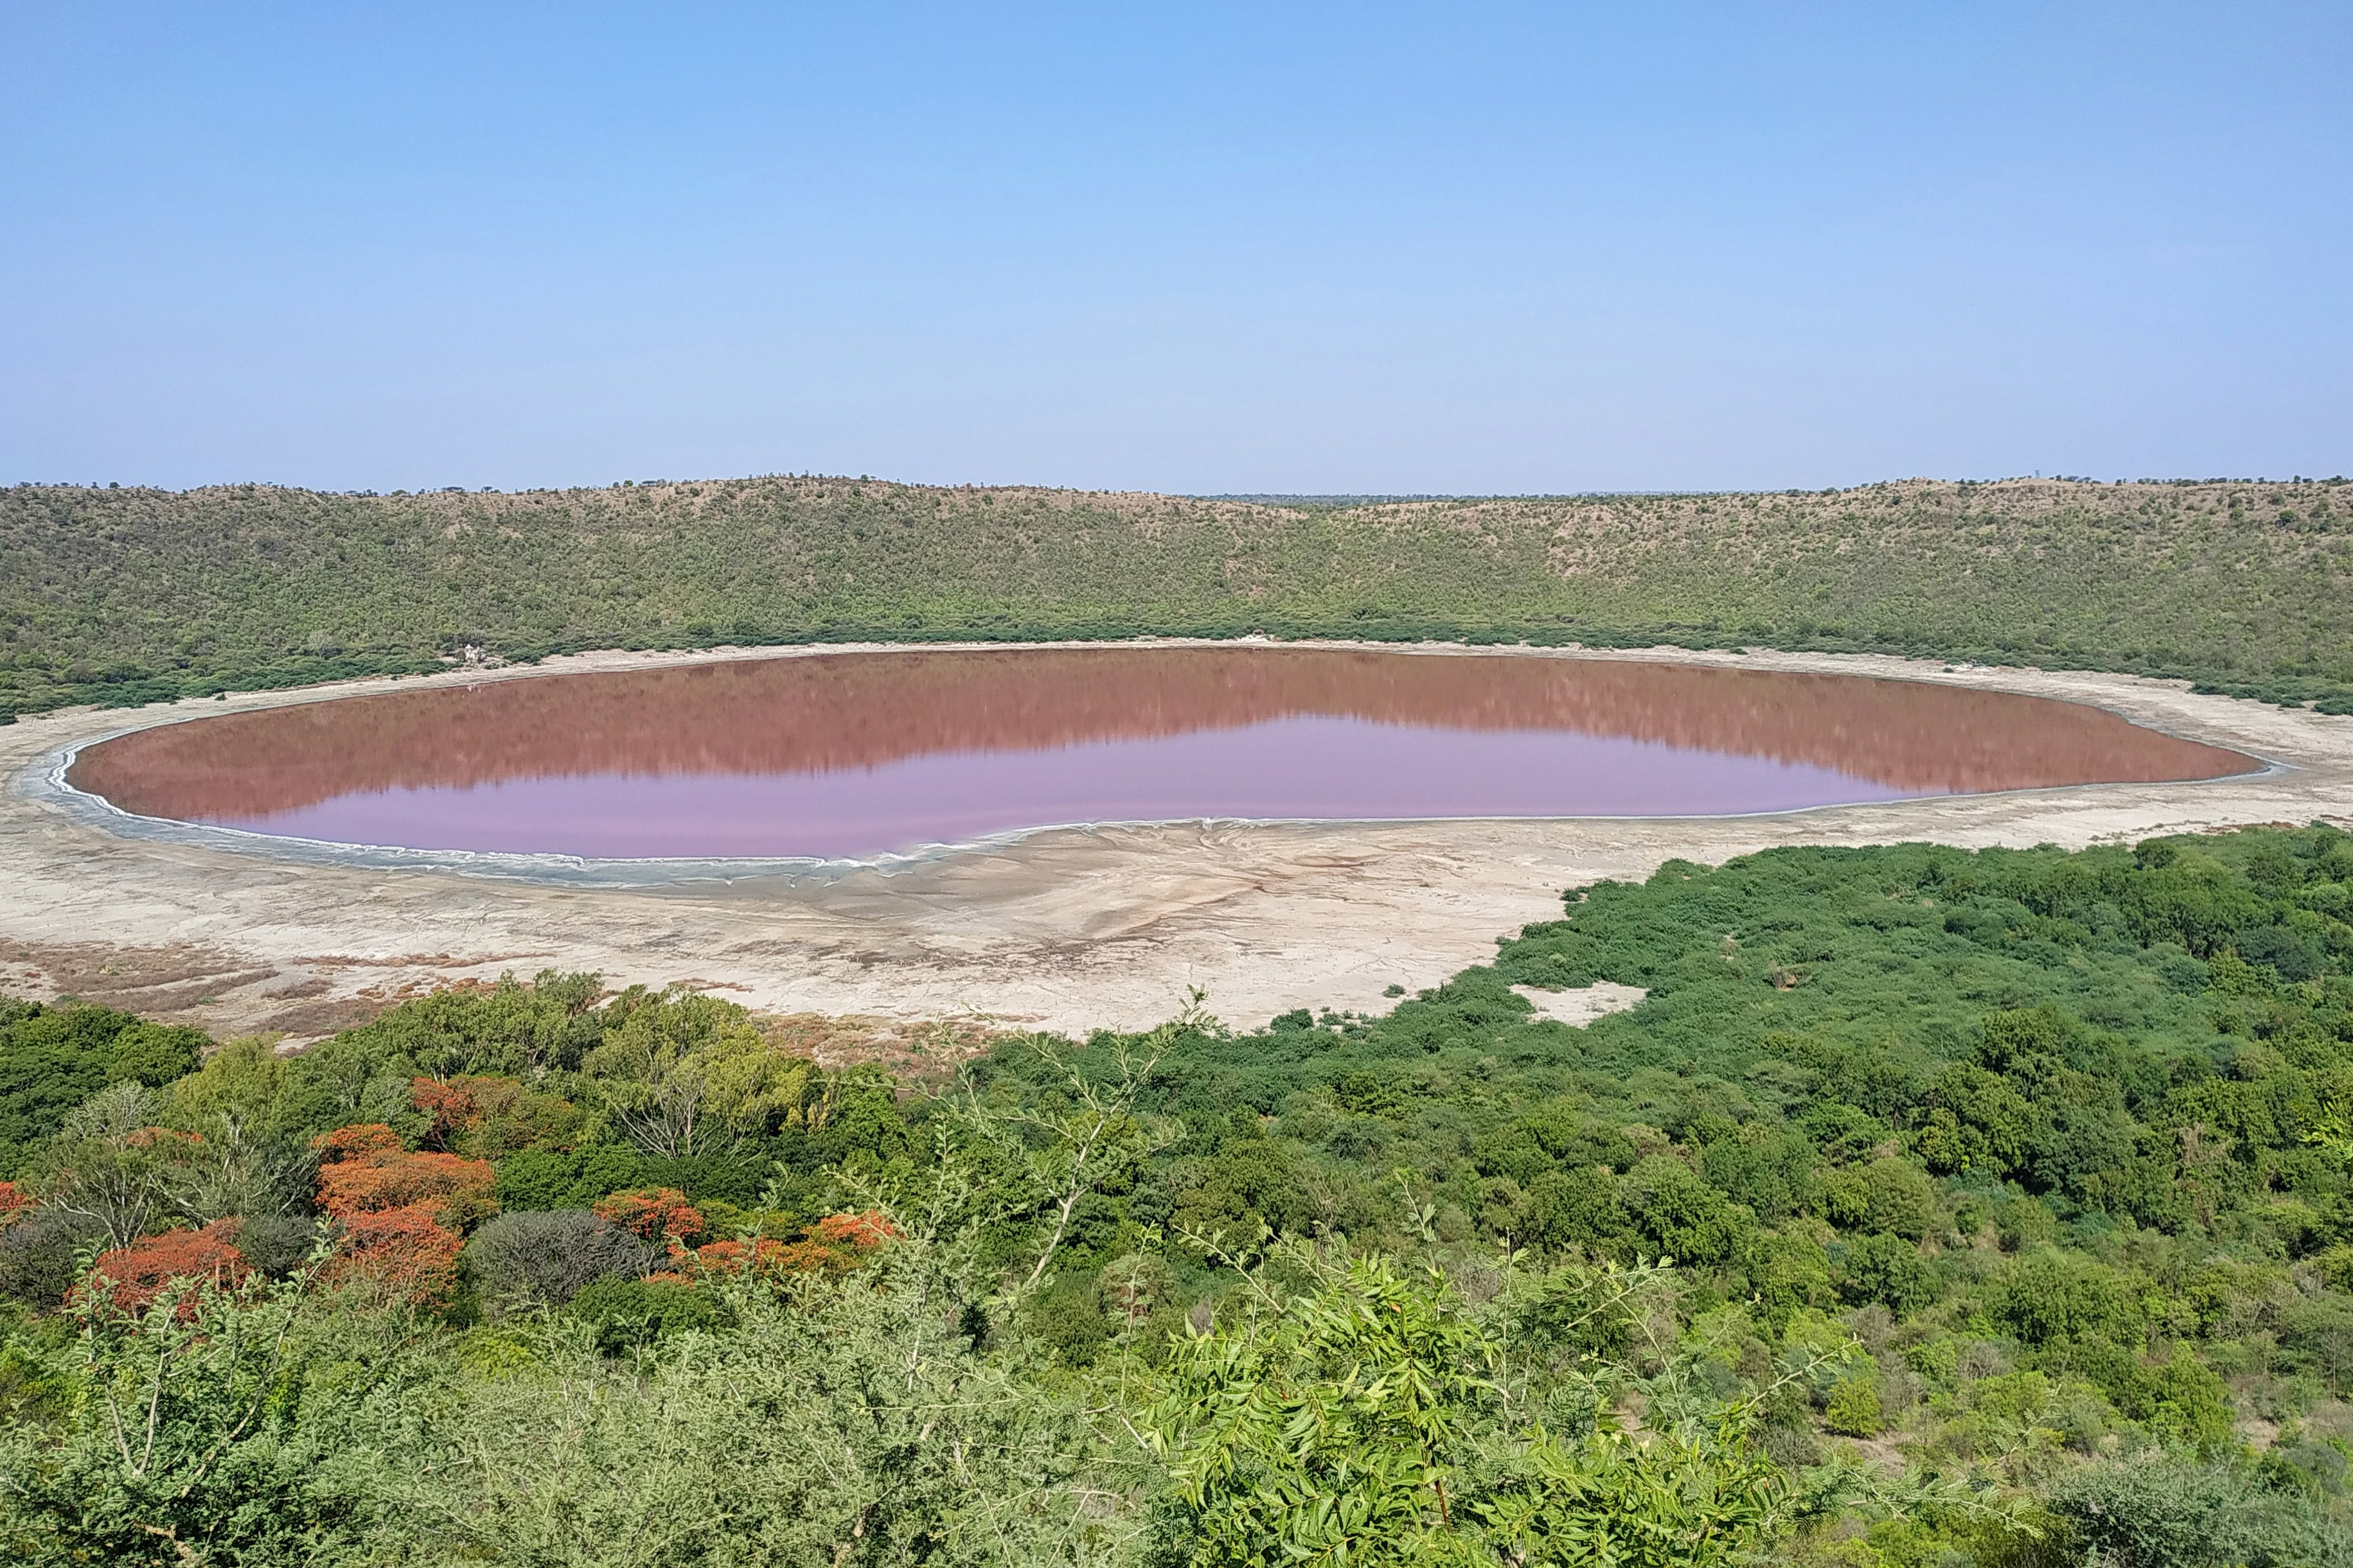 A Meteorite Crater Lake in India Just Mysteriously Changed Colour Overnight